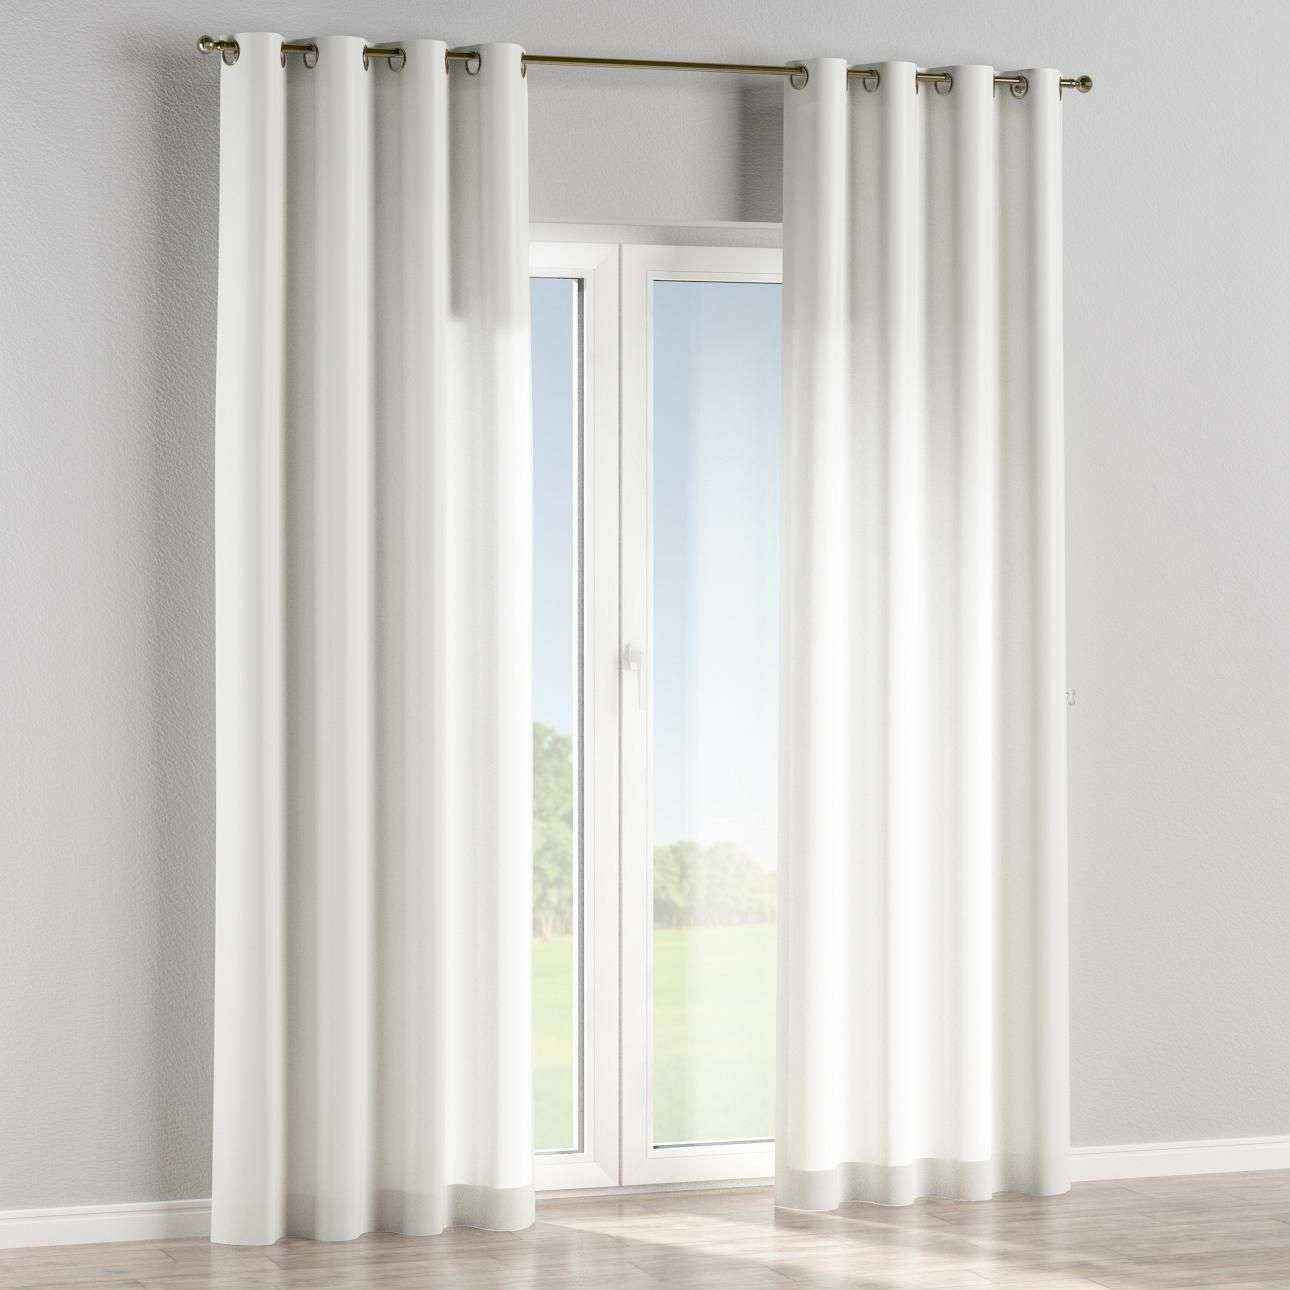 Eyelet curtains in collection Jupiter, fabric: 127-04